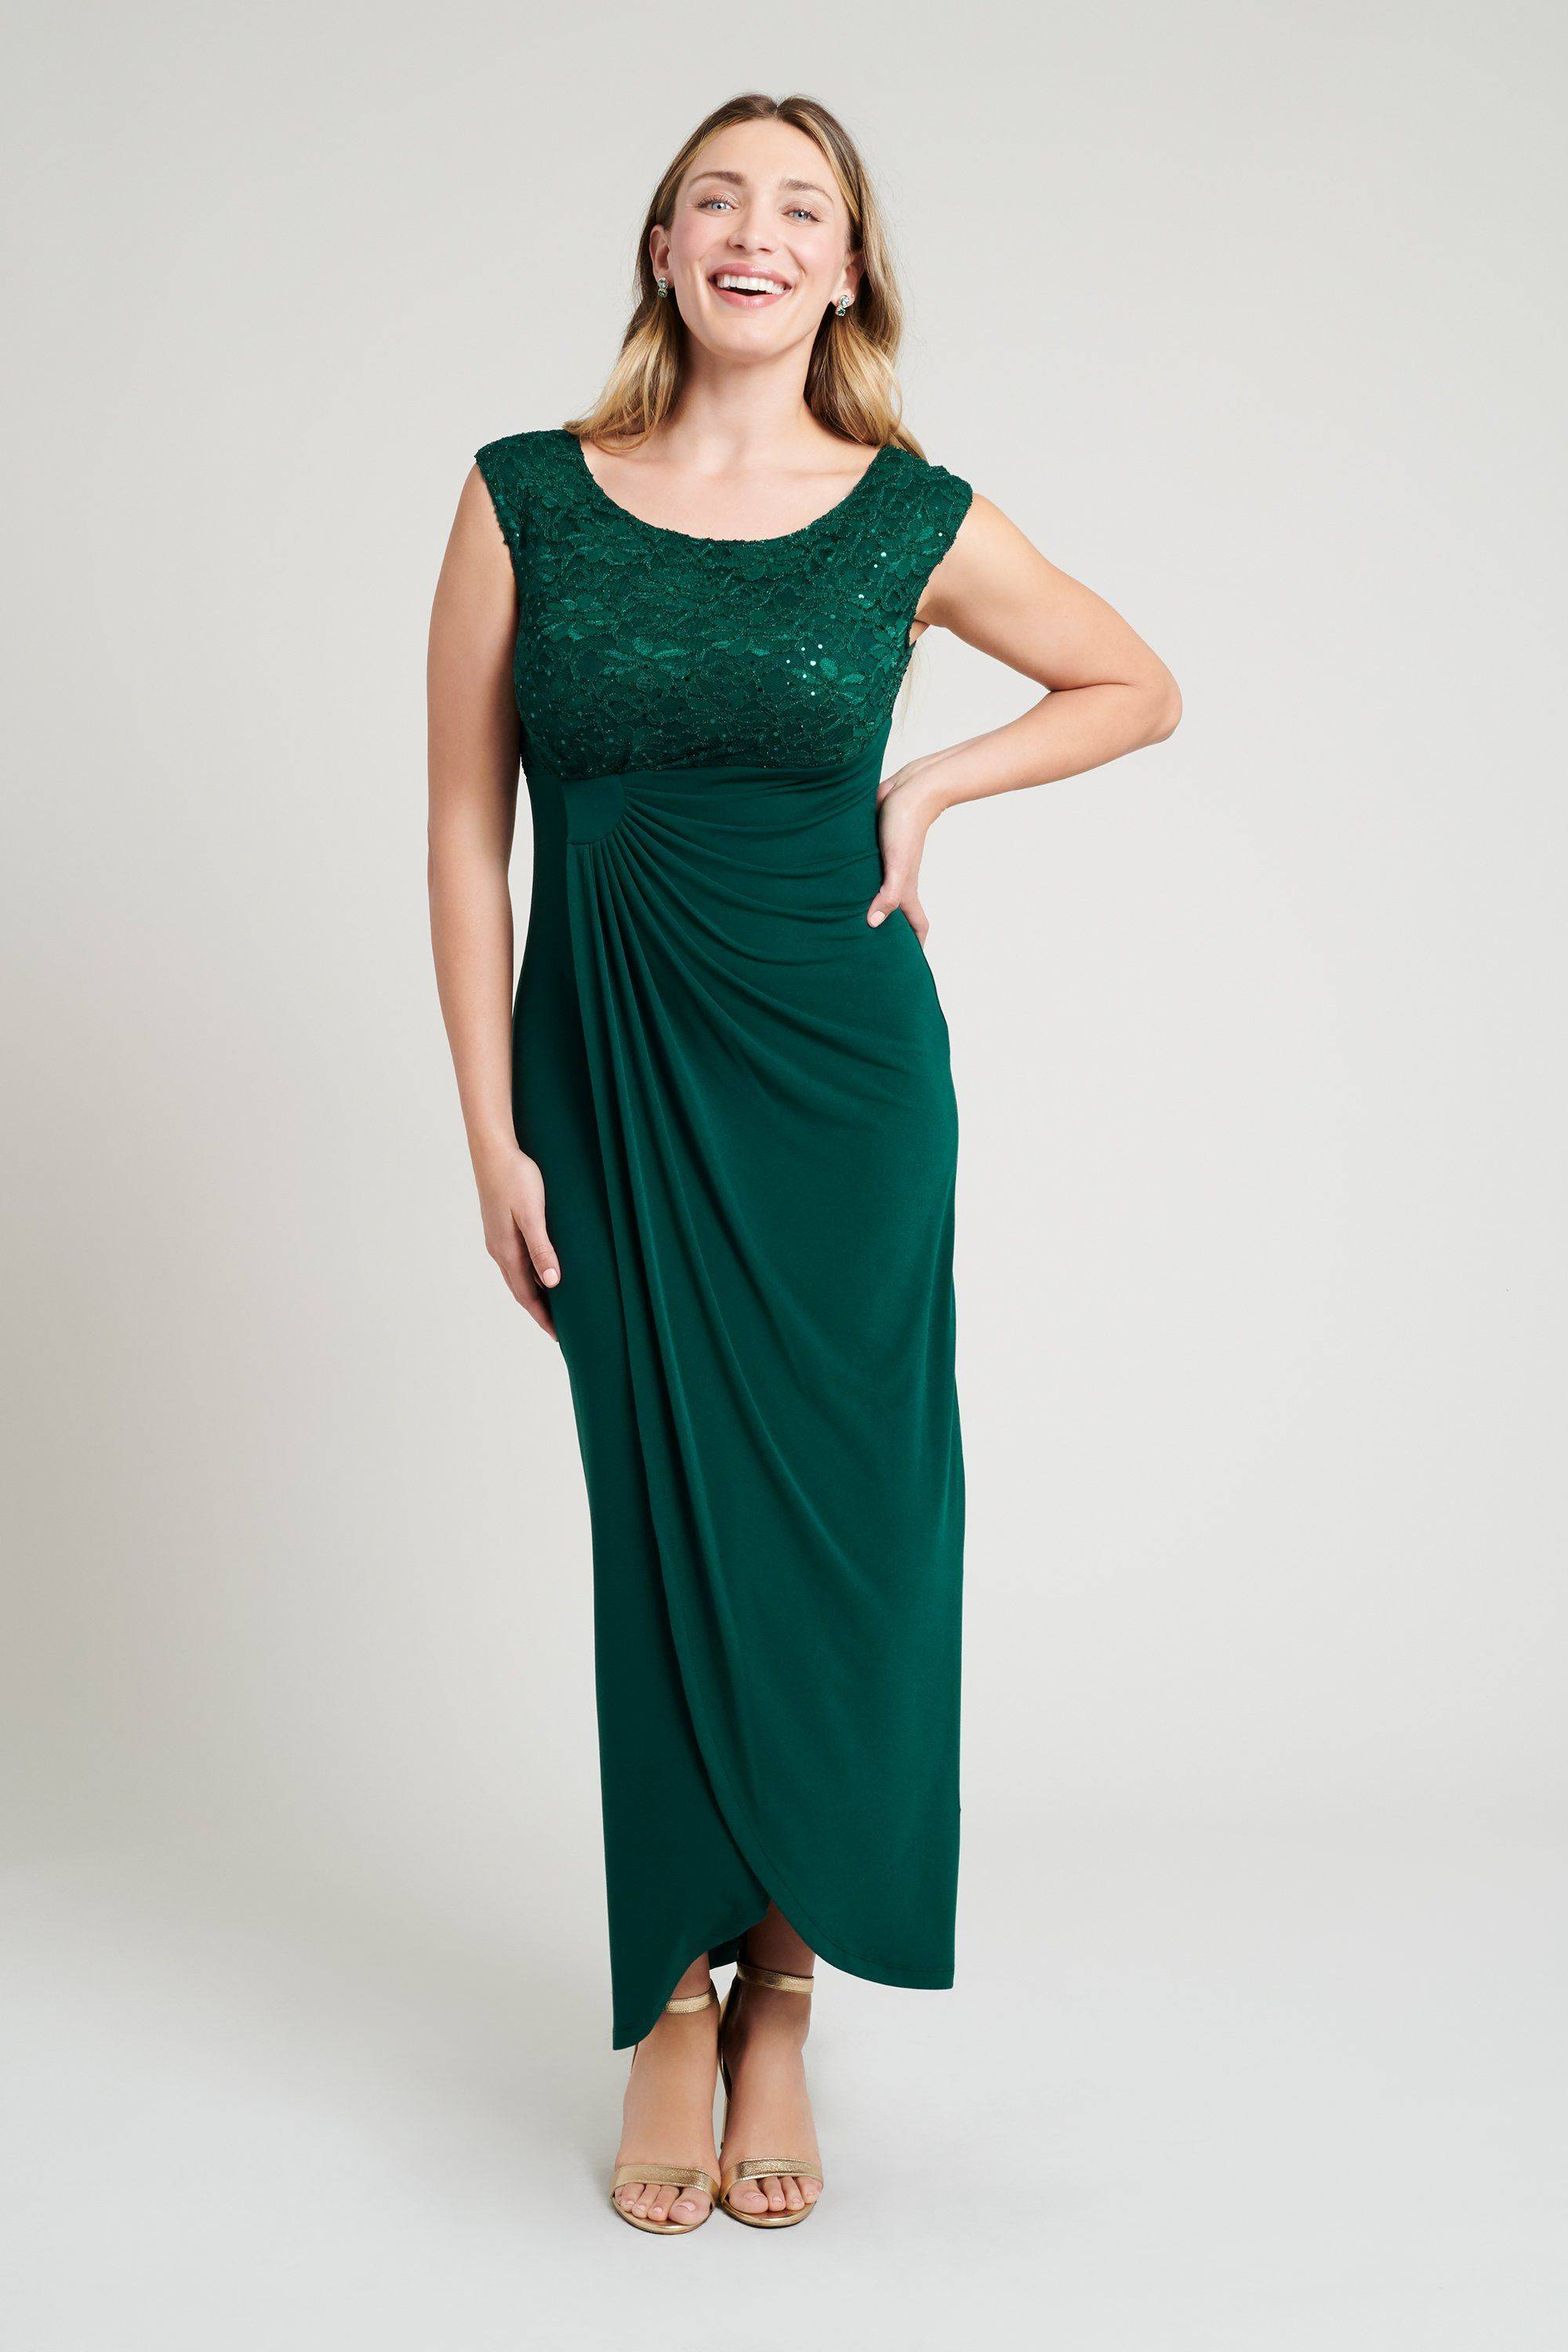 green-sequin-lace-dress-formal-party-holiday-special-occasion-hunter-womens-connected-apparel